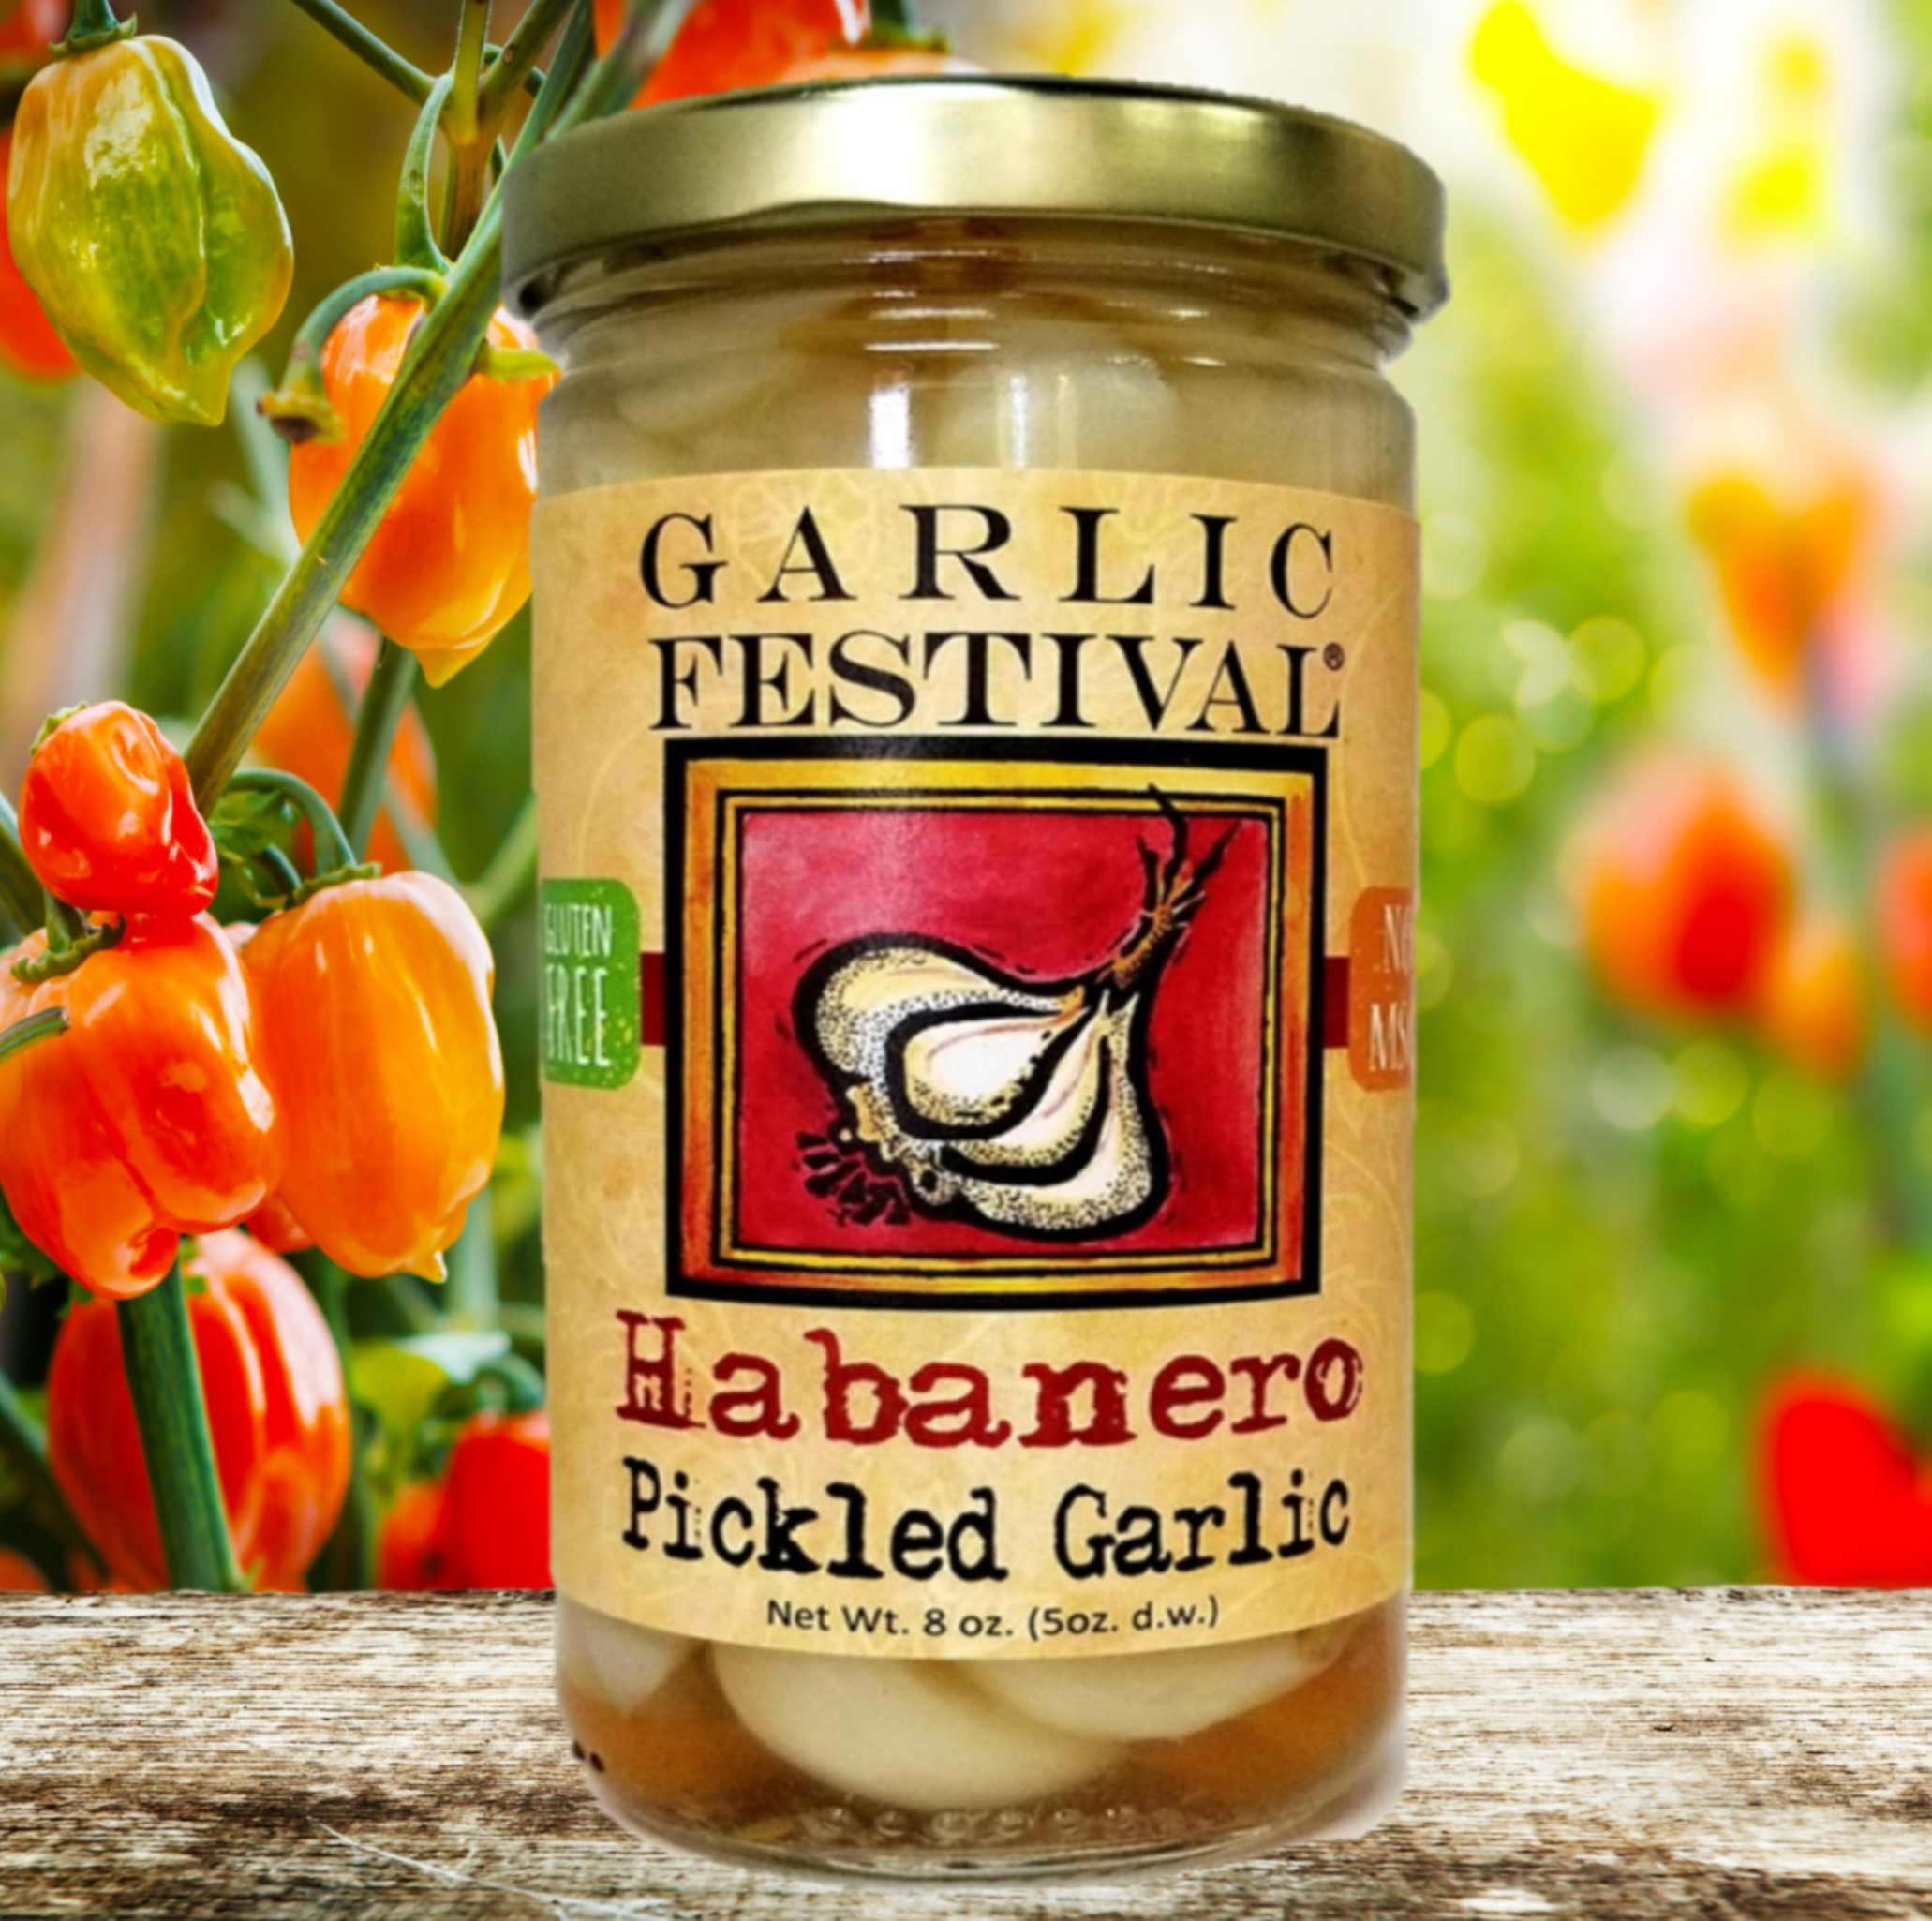 Habanero Pickled Garlic